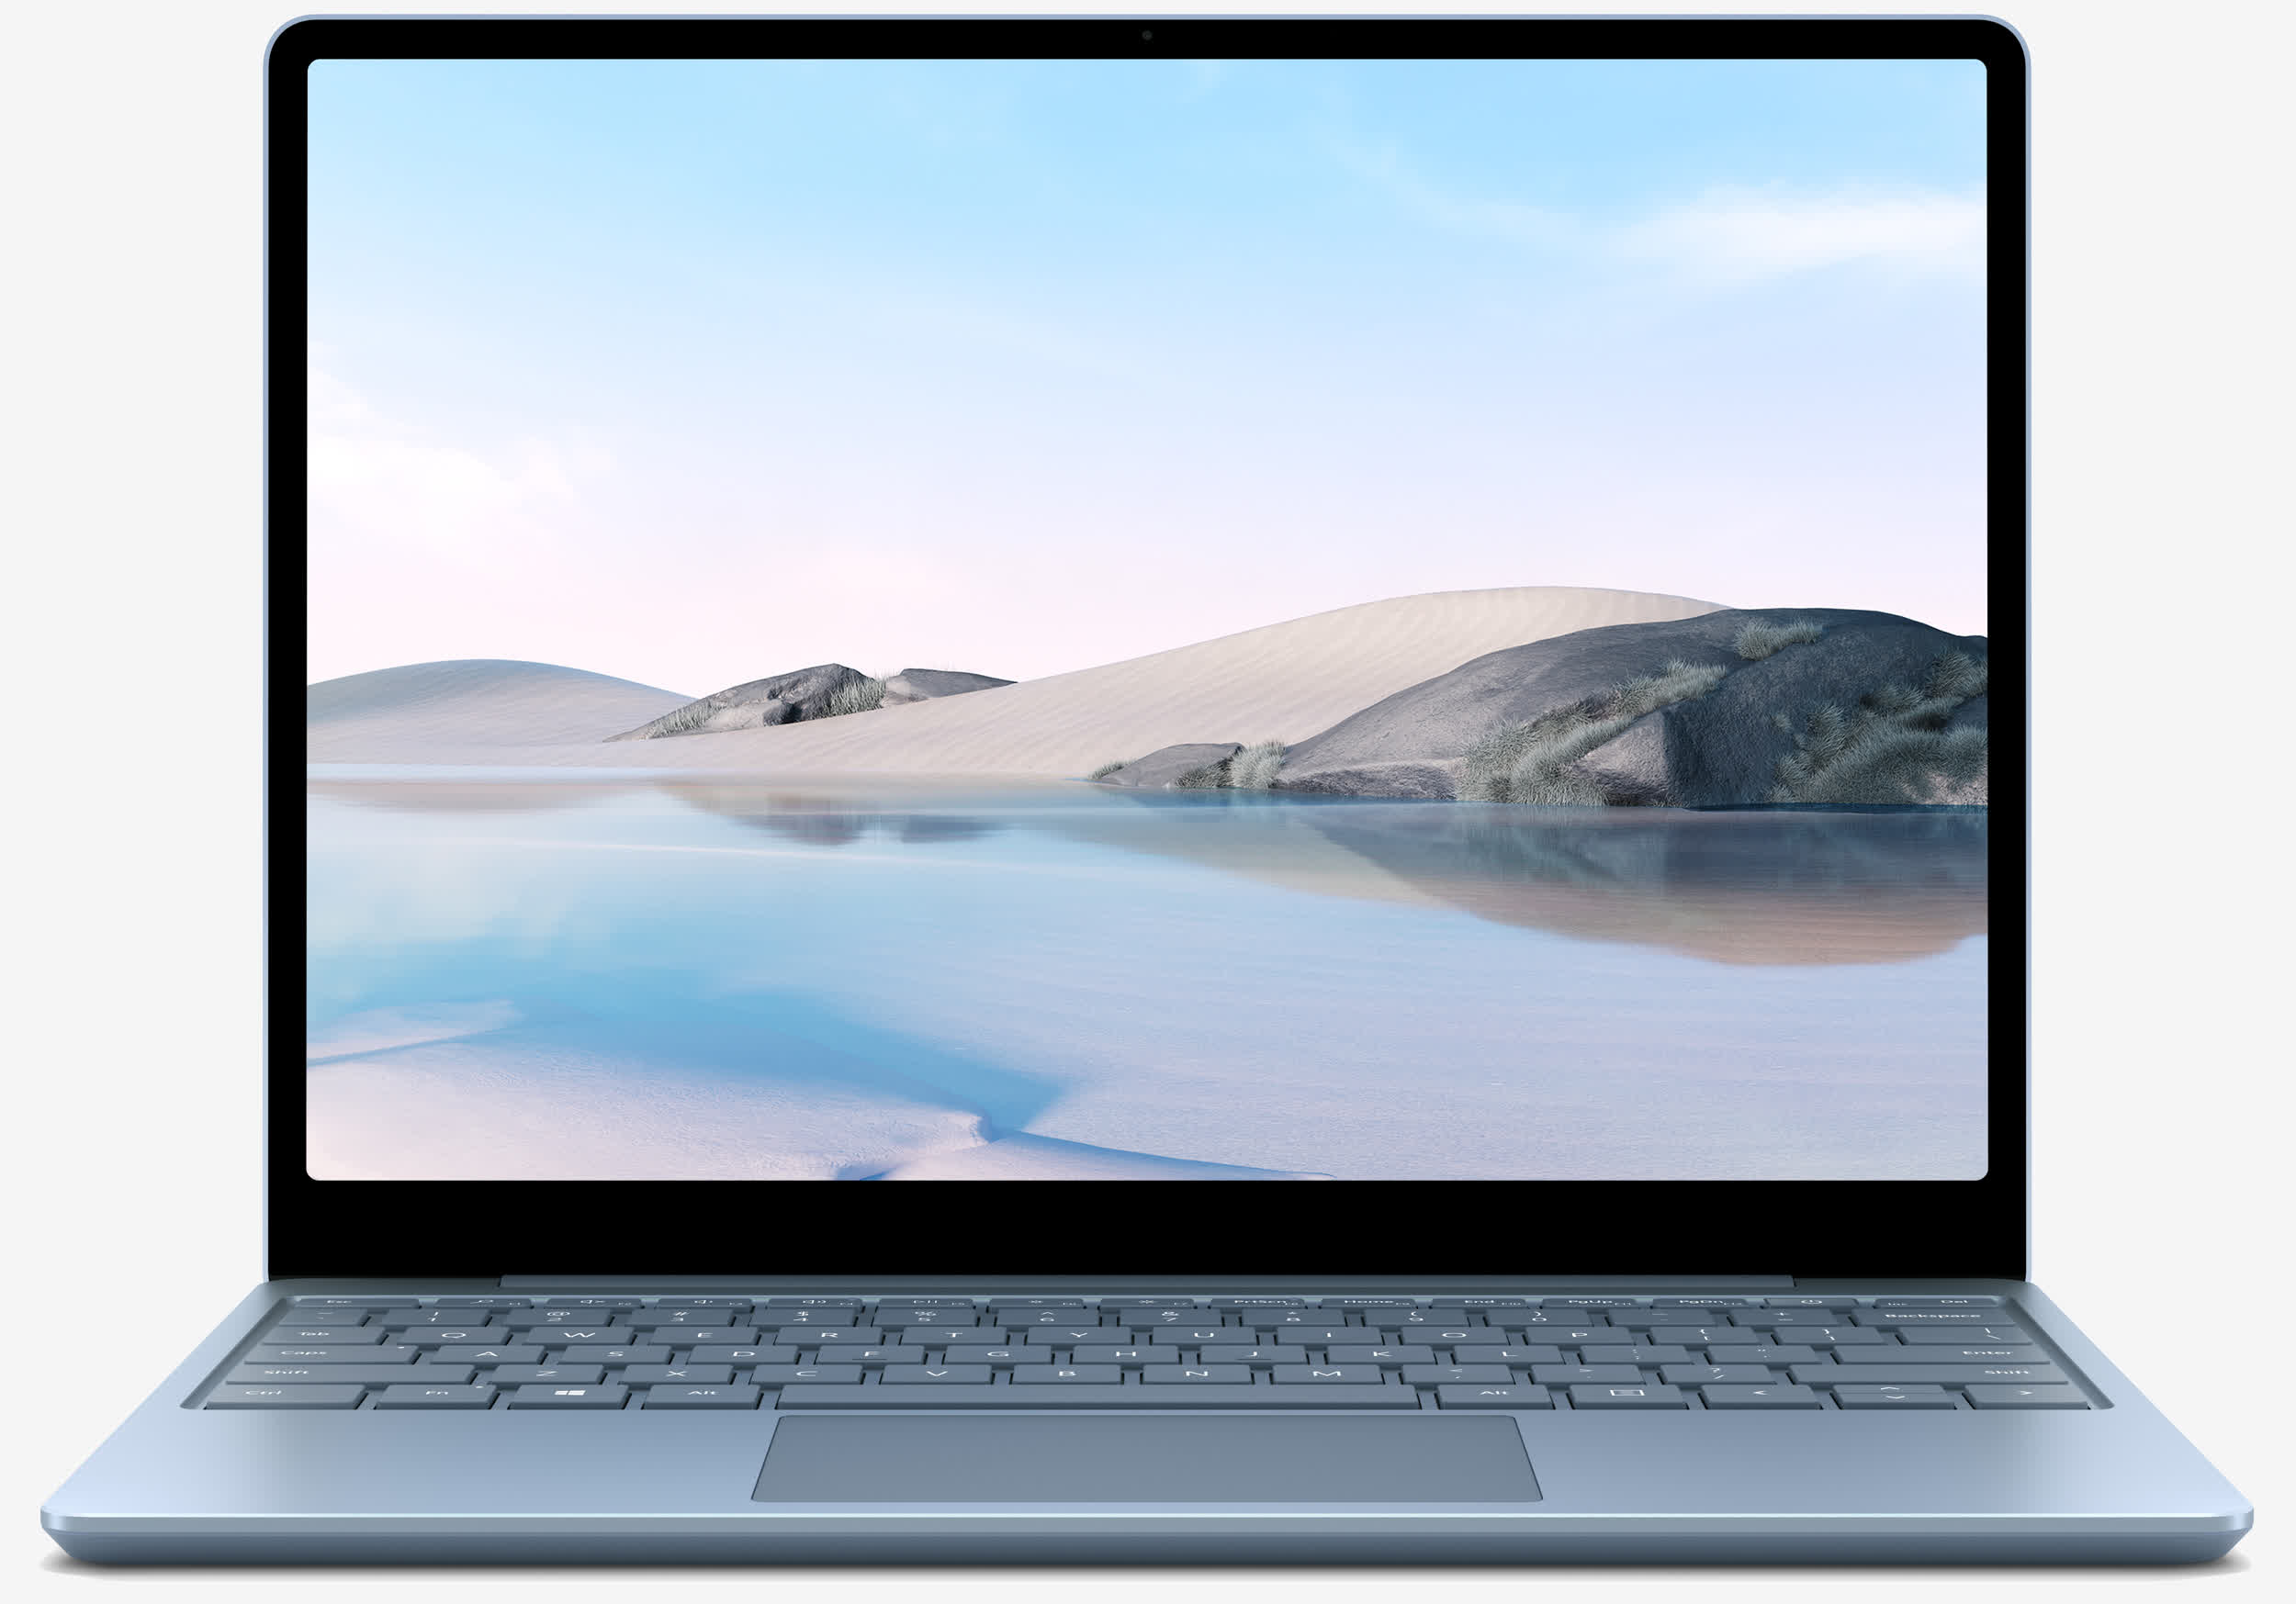 Microsoft announces $549.99 Surface Laptop Go with 12.4-inch display and Core i5 CPU